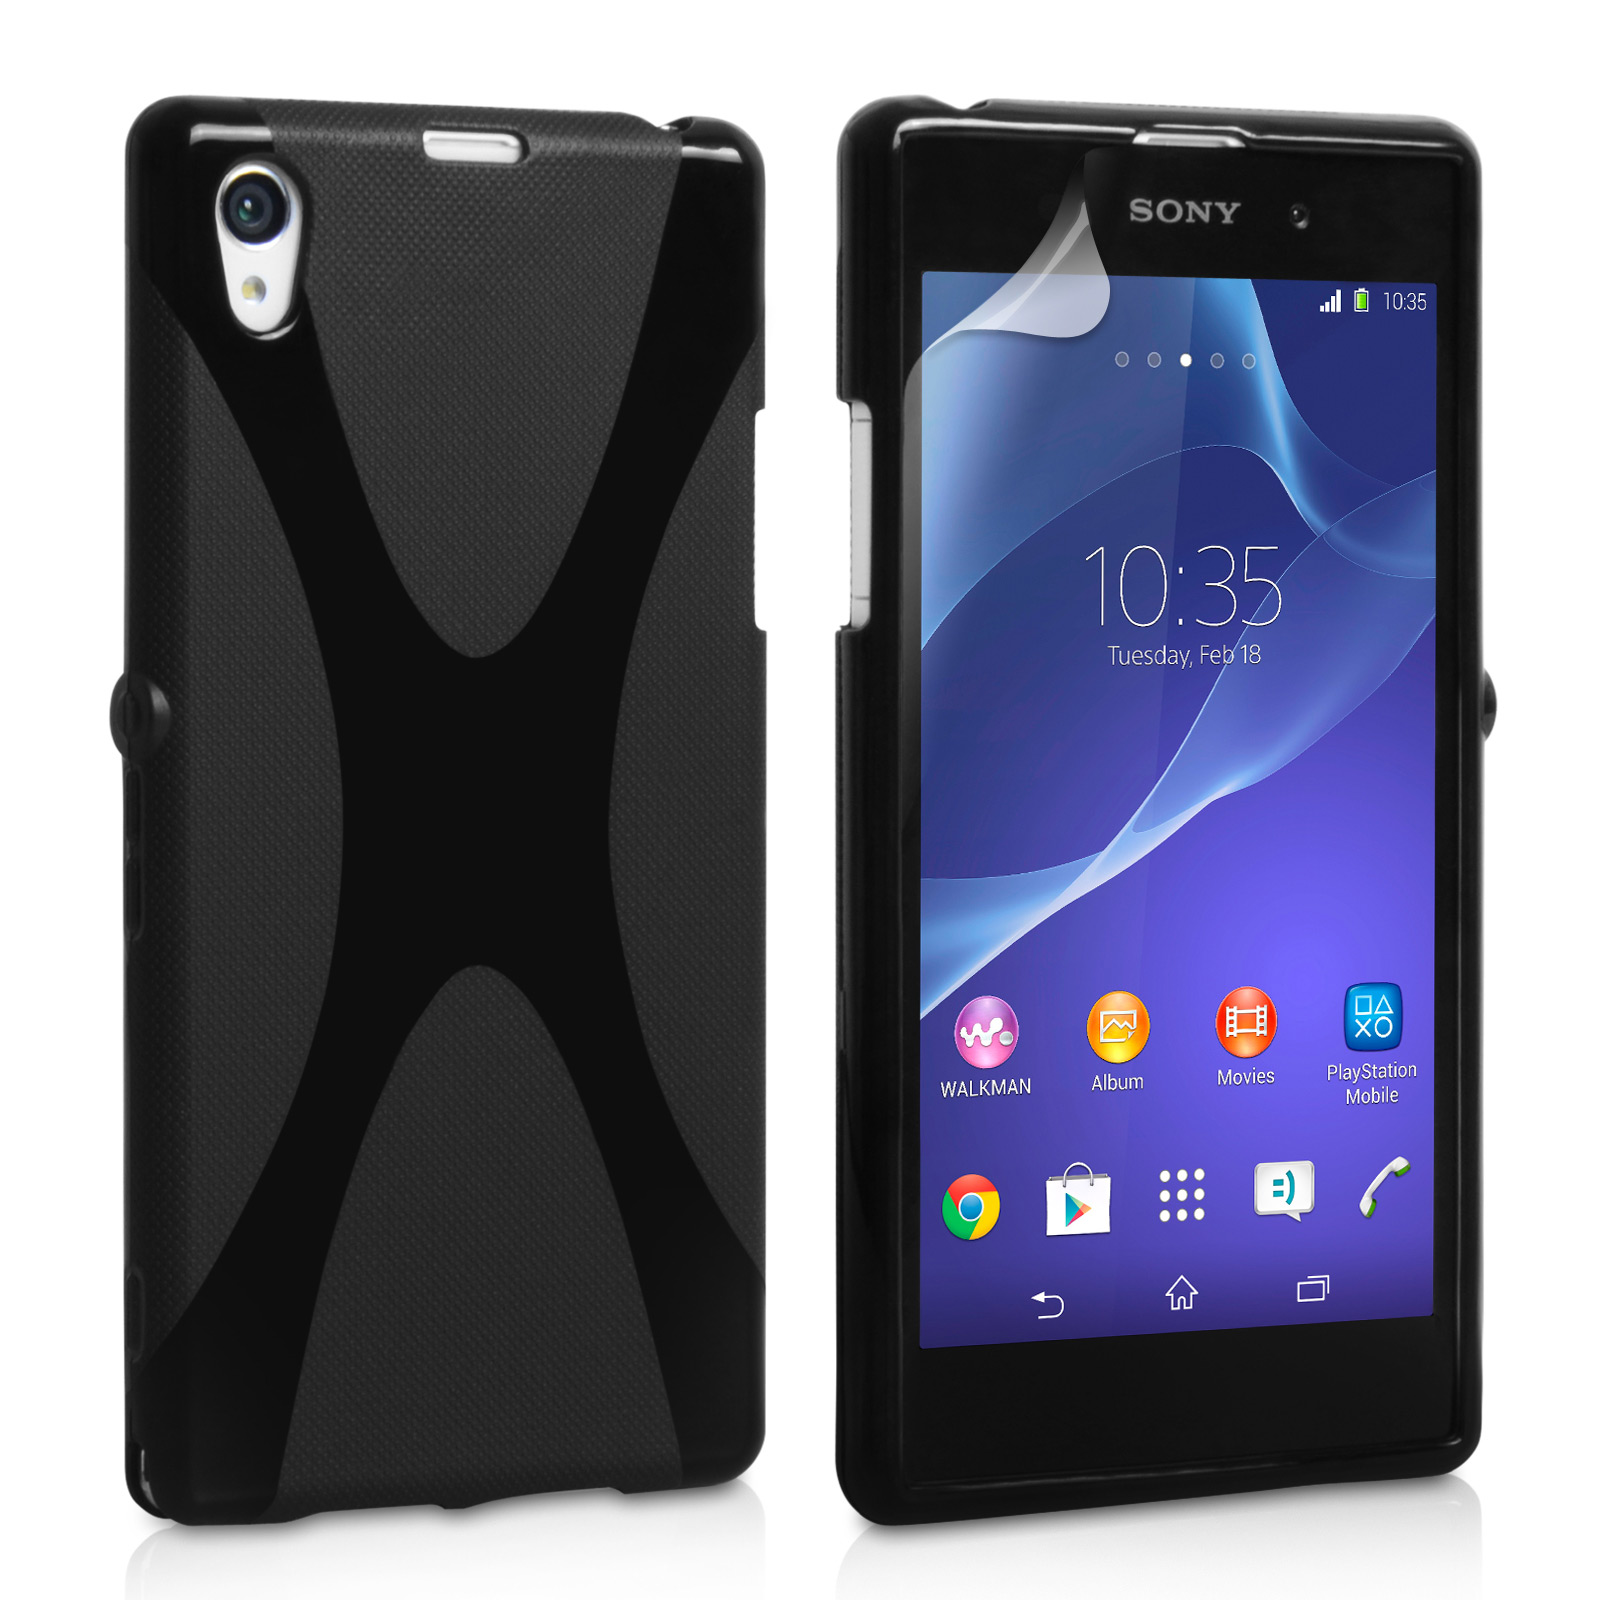 YouSave Accessories Sony Xperia Z2 Silicone Gel X-Line Case - Black